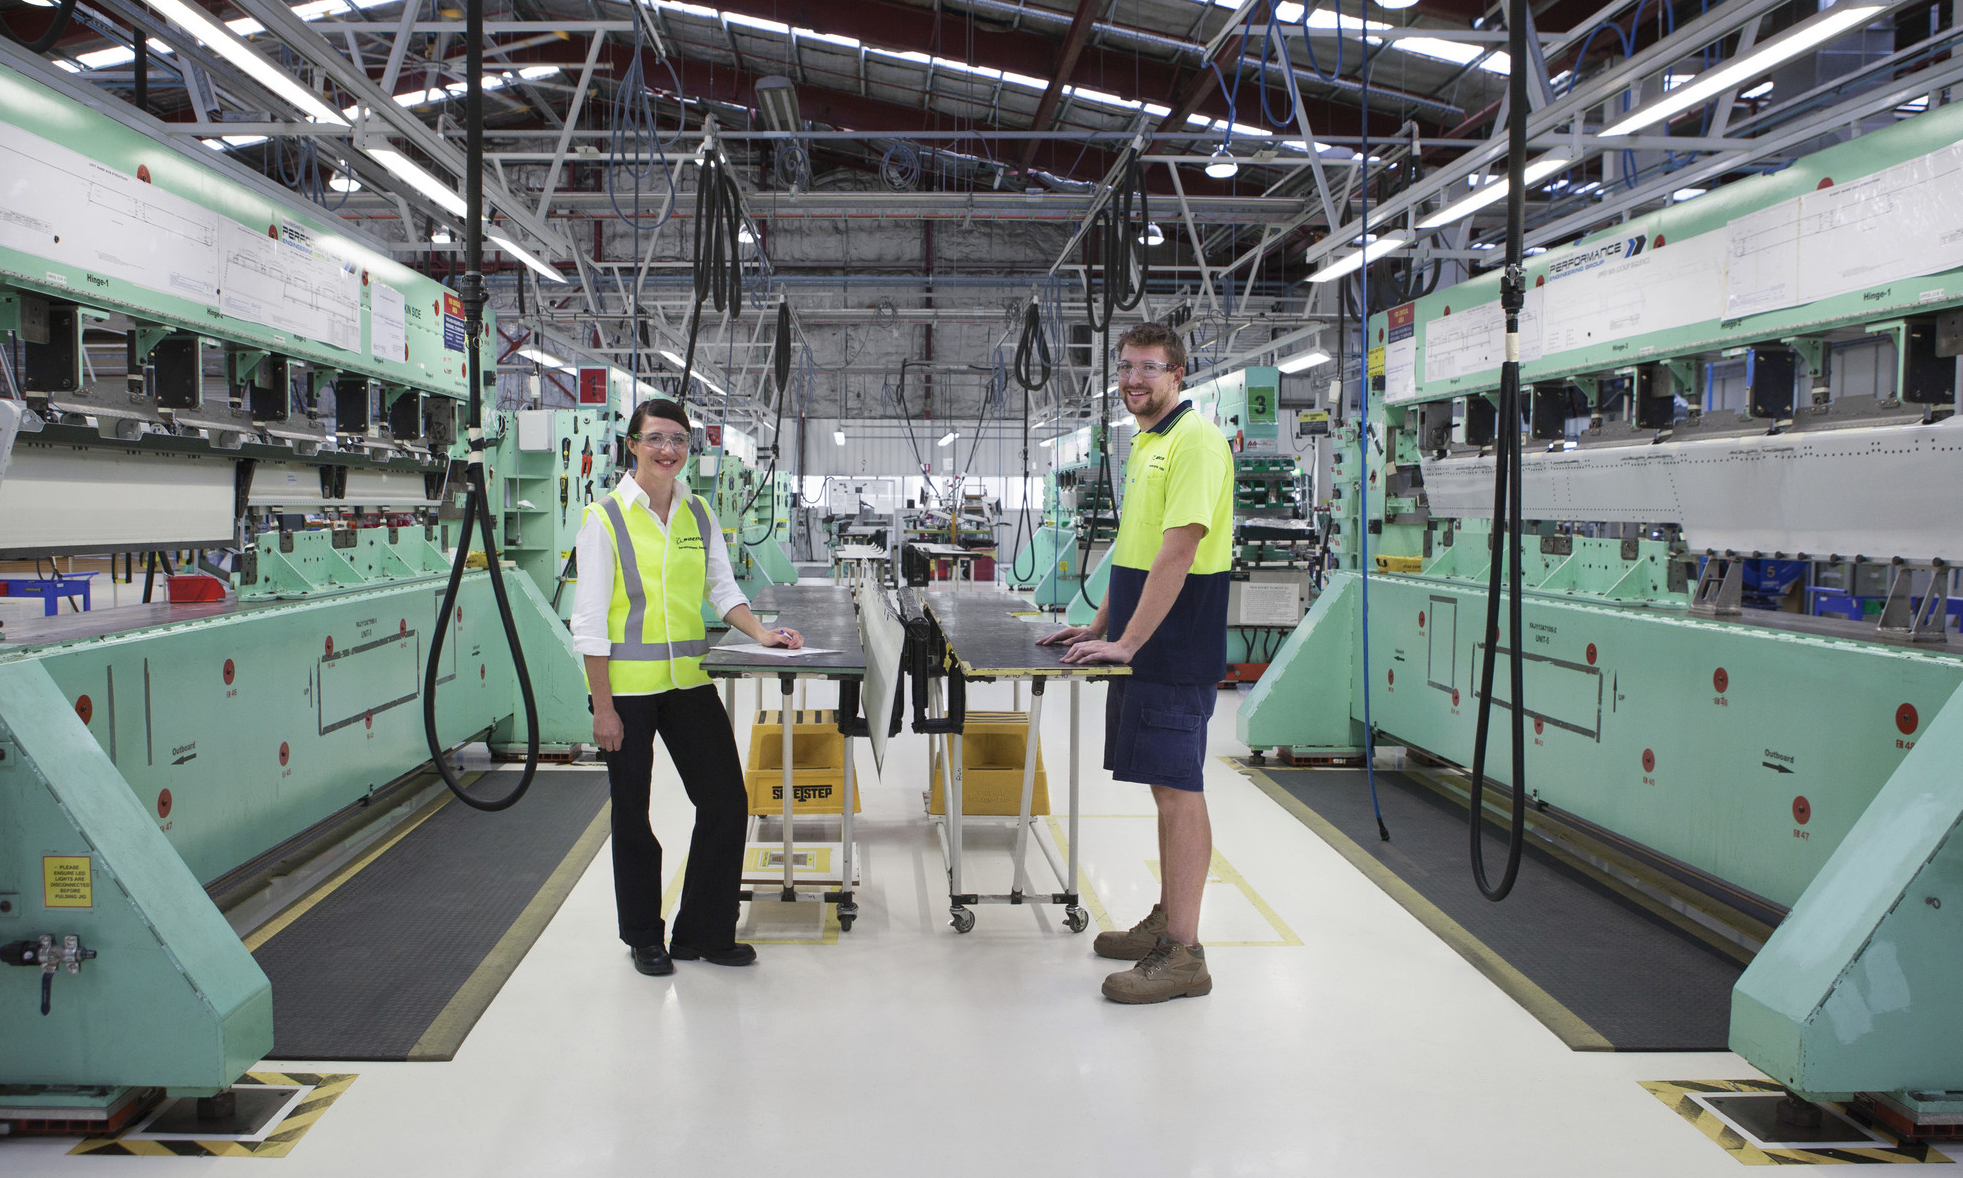 Two peopole in fluro vests standing in a factory.